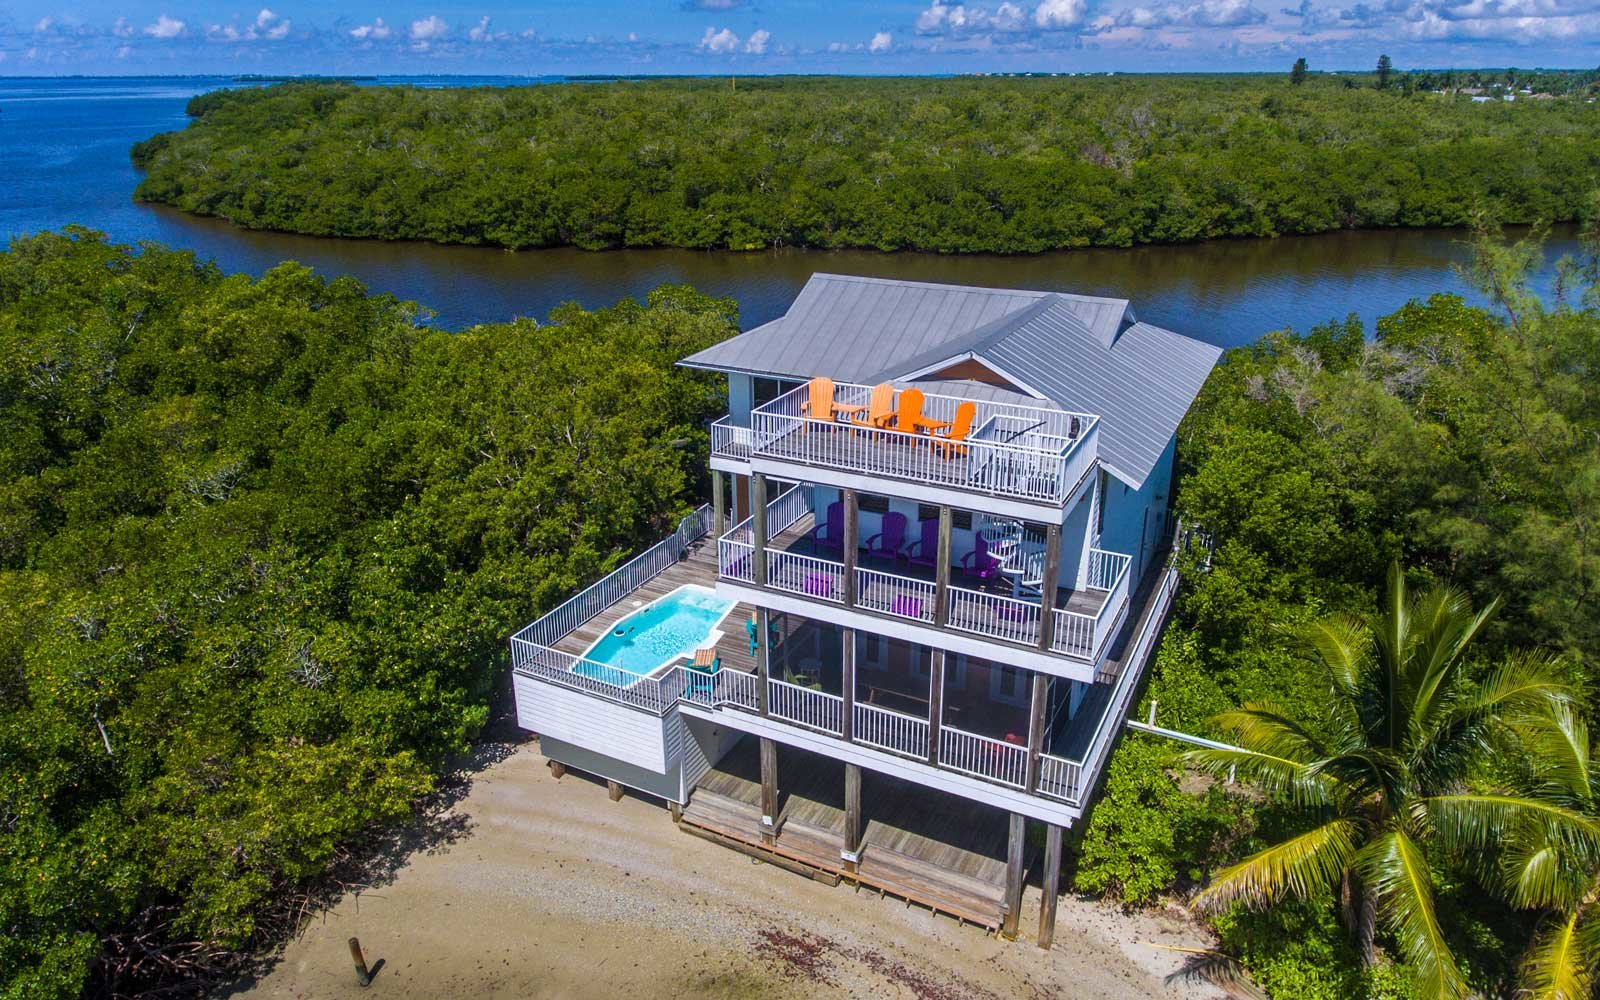 Airbnb Sanibel for best New Years Eve Trip